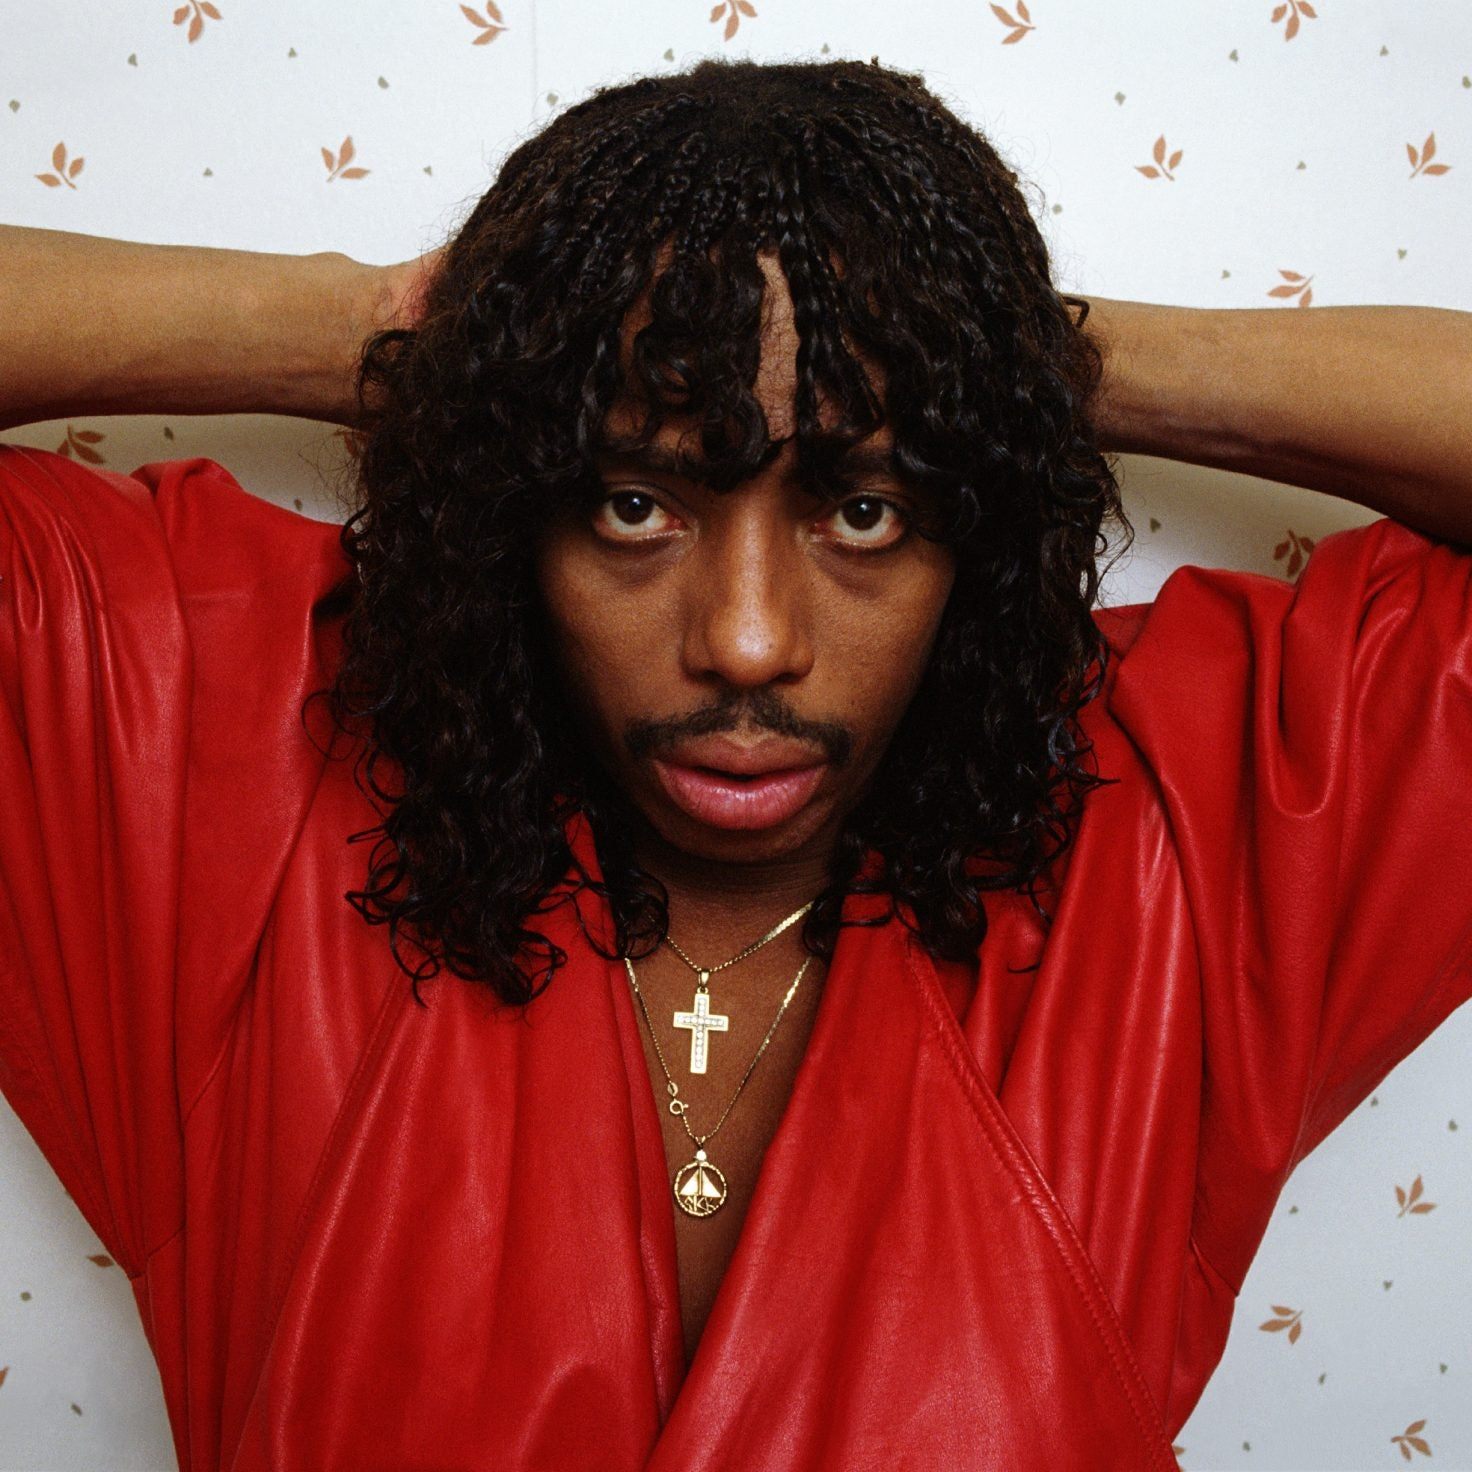 Rick James Accused of Rape 15 Years After His Death